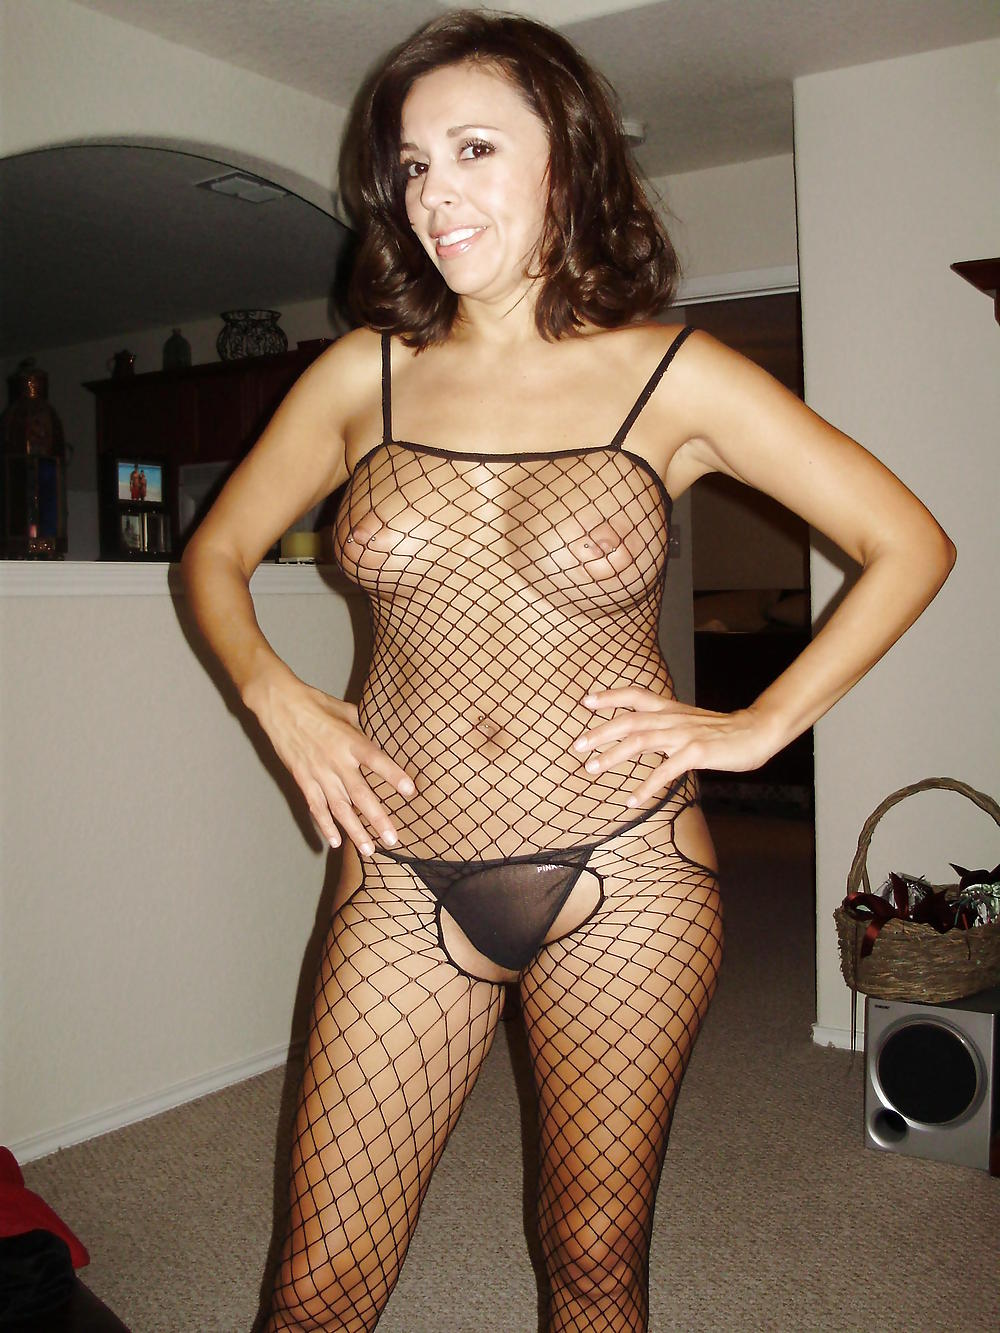 Latina MILF wife cougar dressing naughty 29 – Wife Update